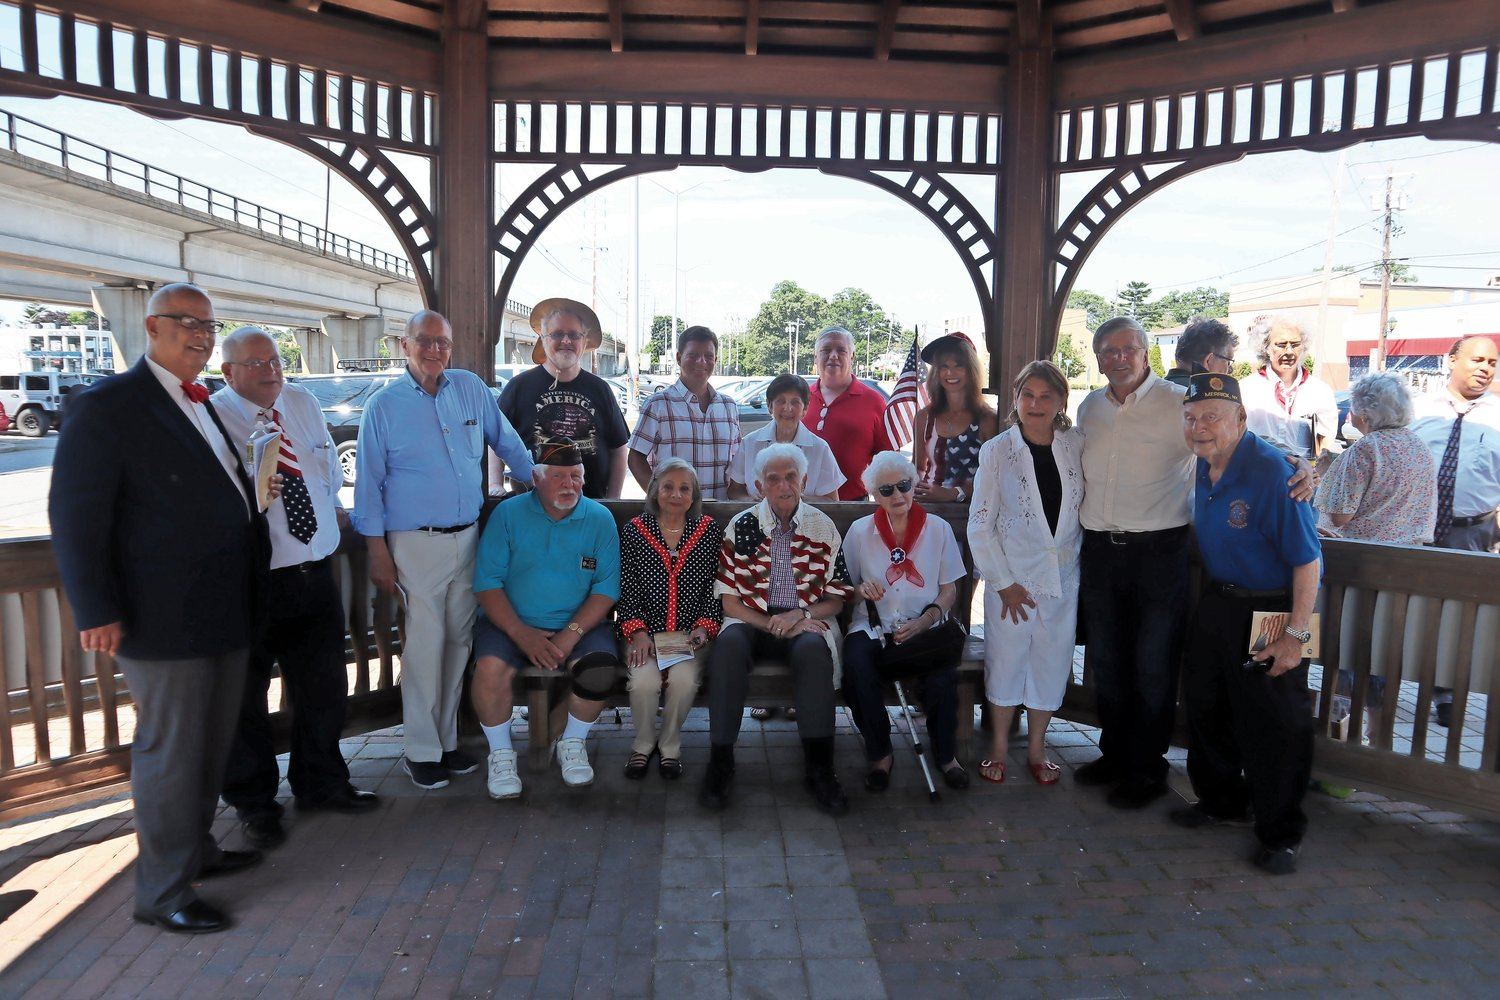 After the Declaration was read, the group gathered under the gazebo.